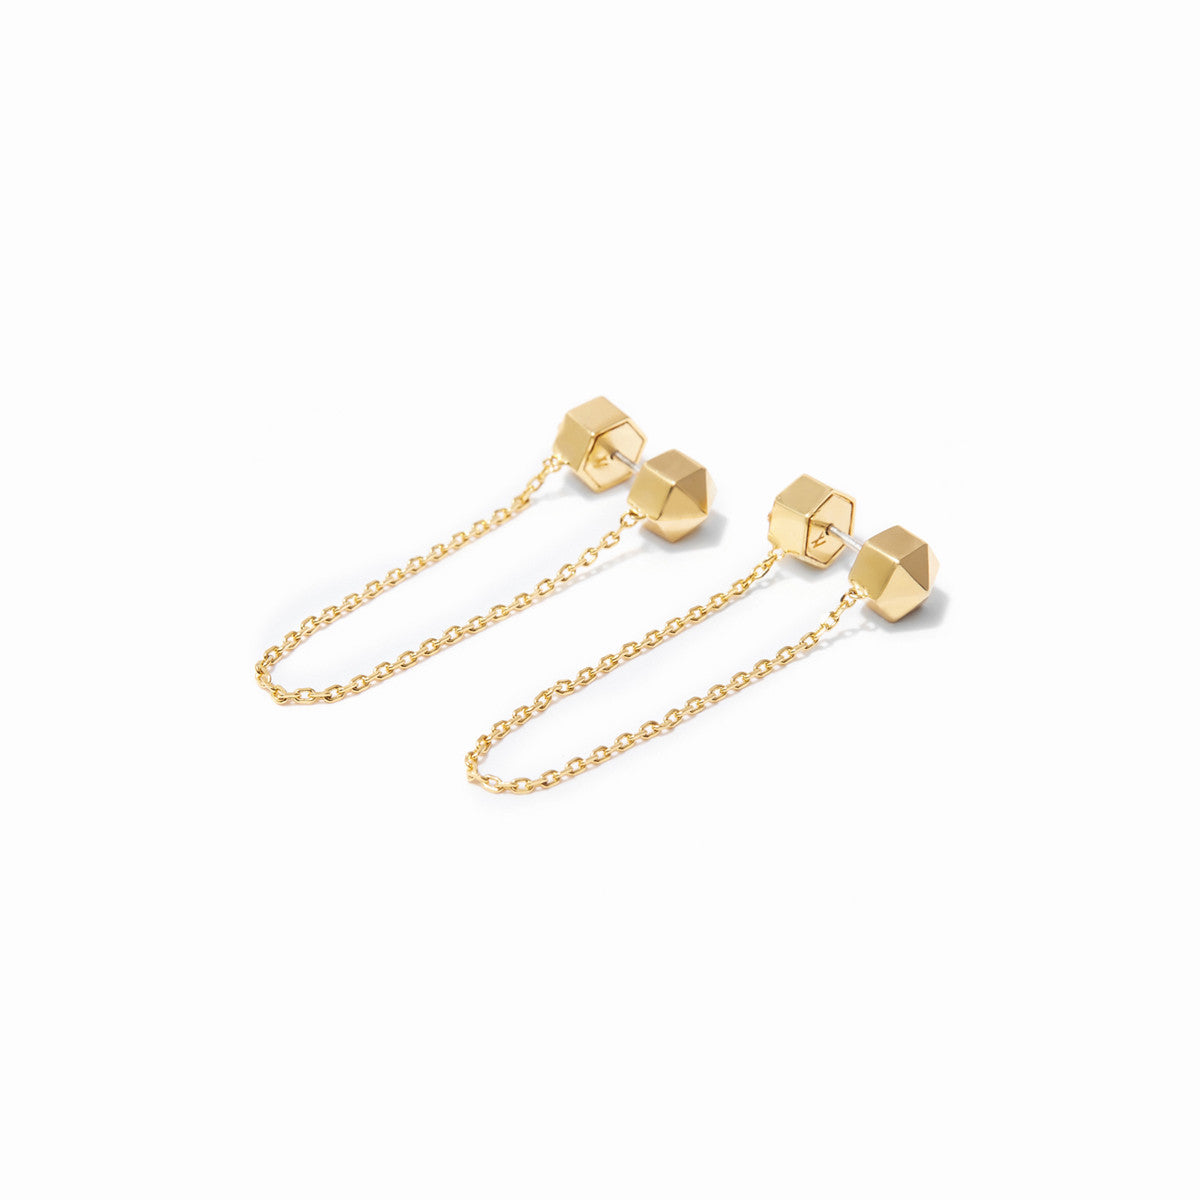 Aurum Chain Studs - Gold